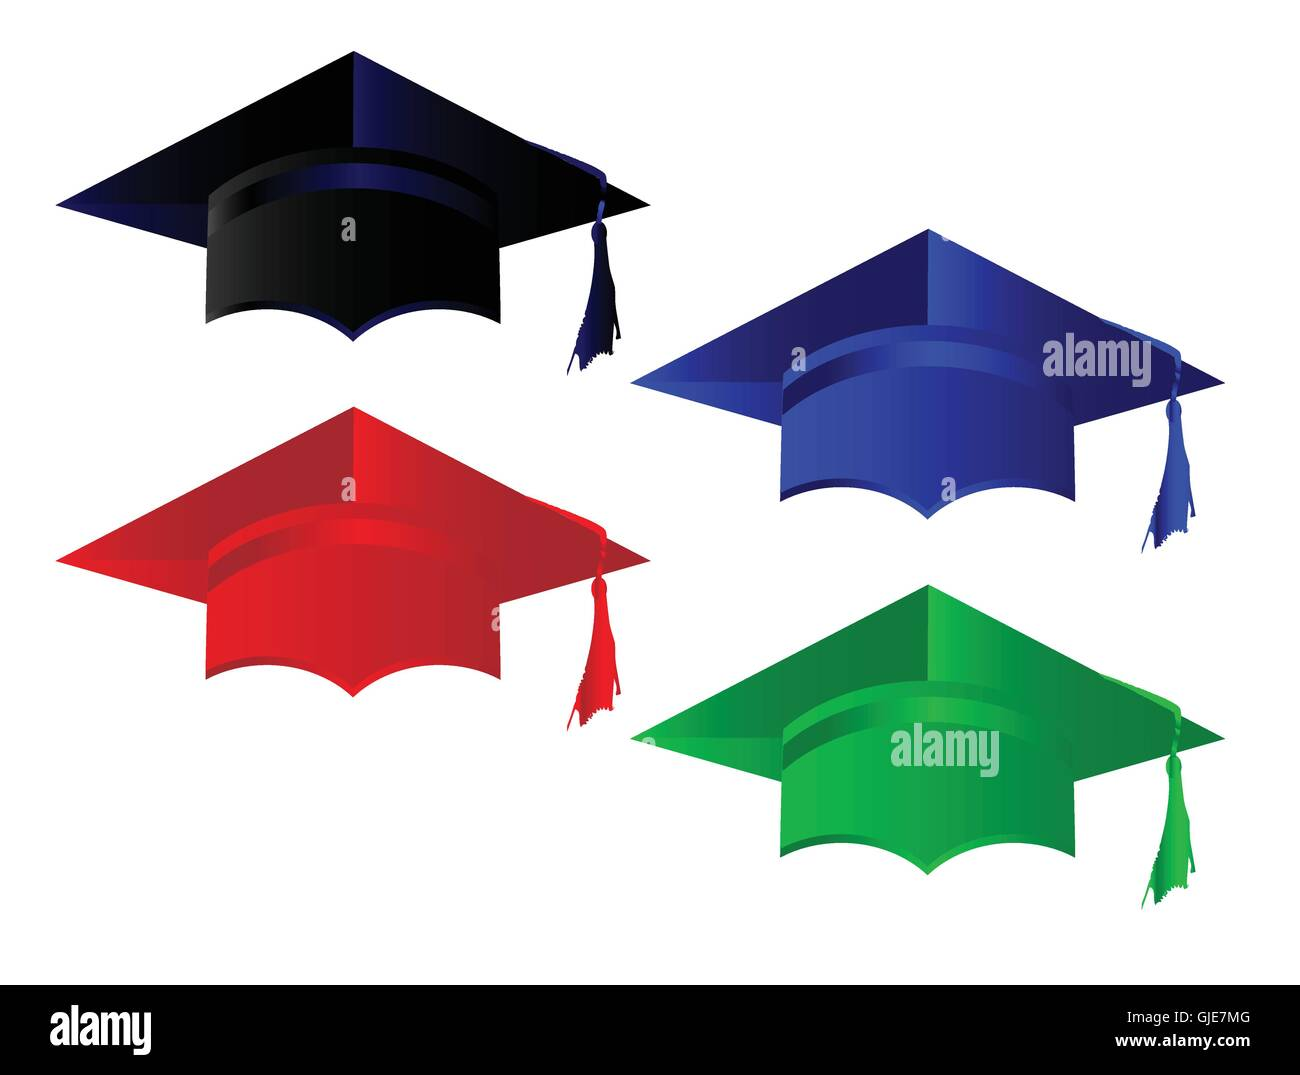 The caps from various levels of academia - Stock Image